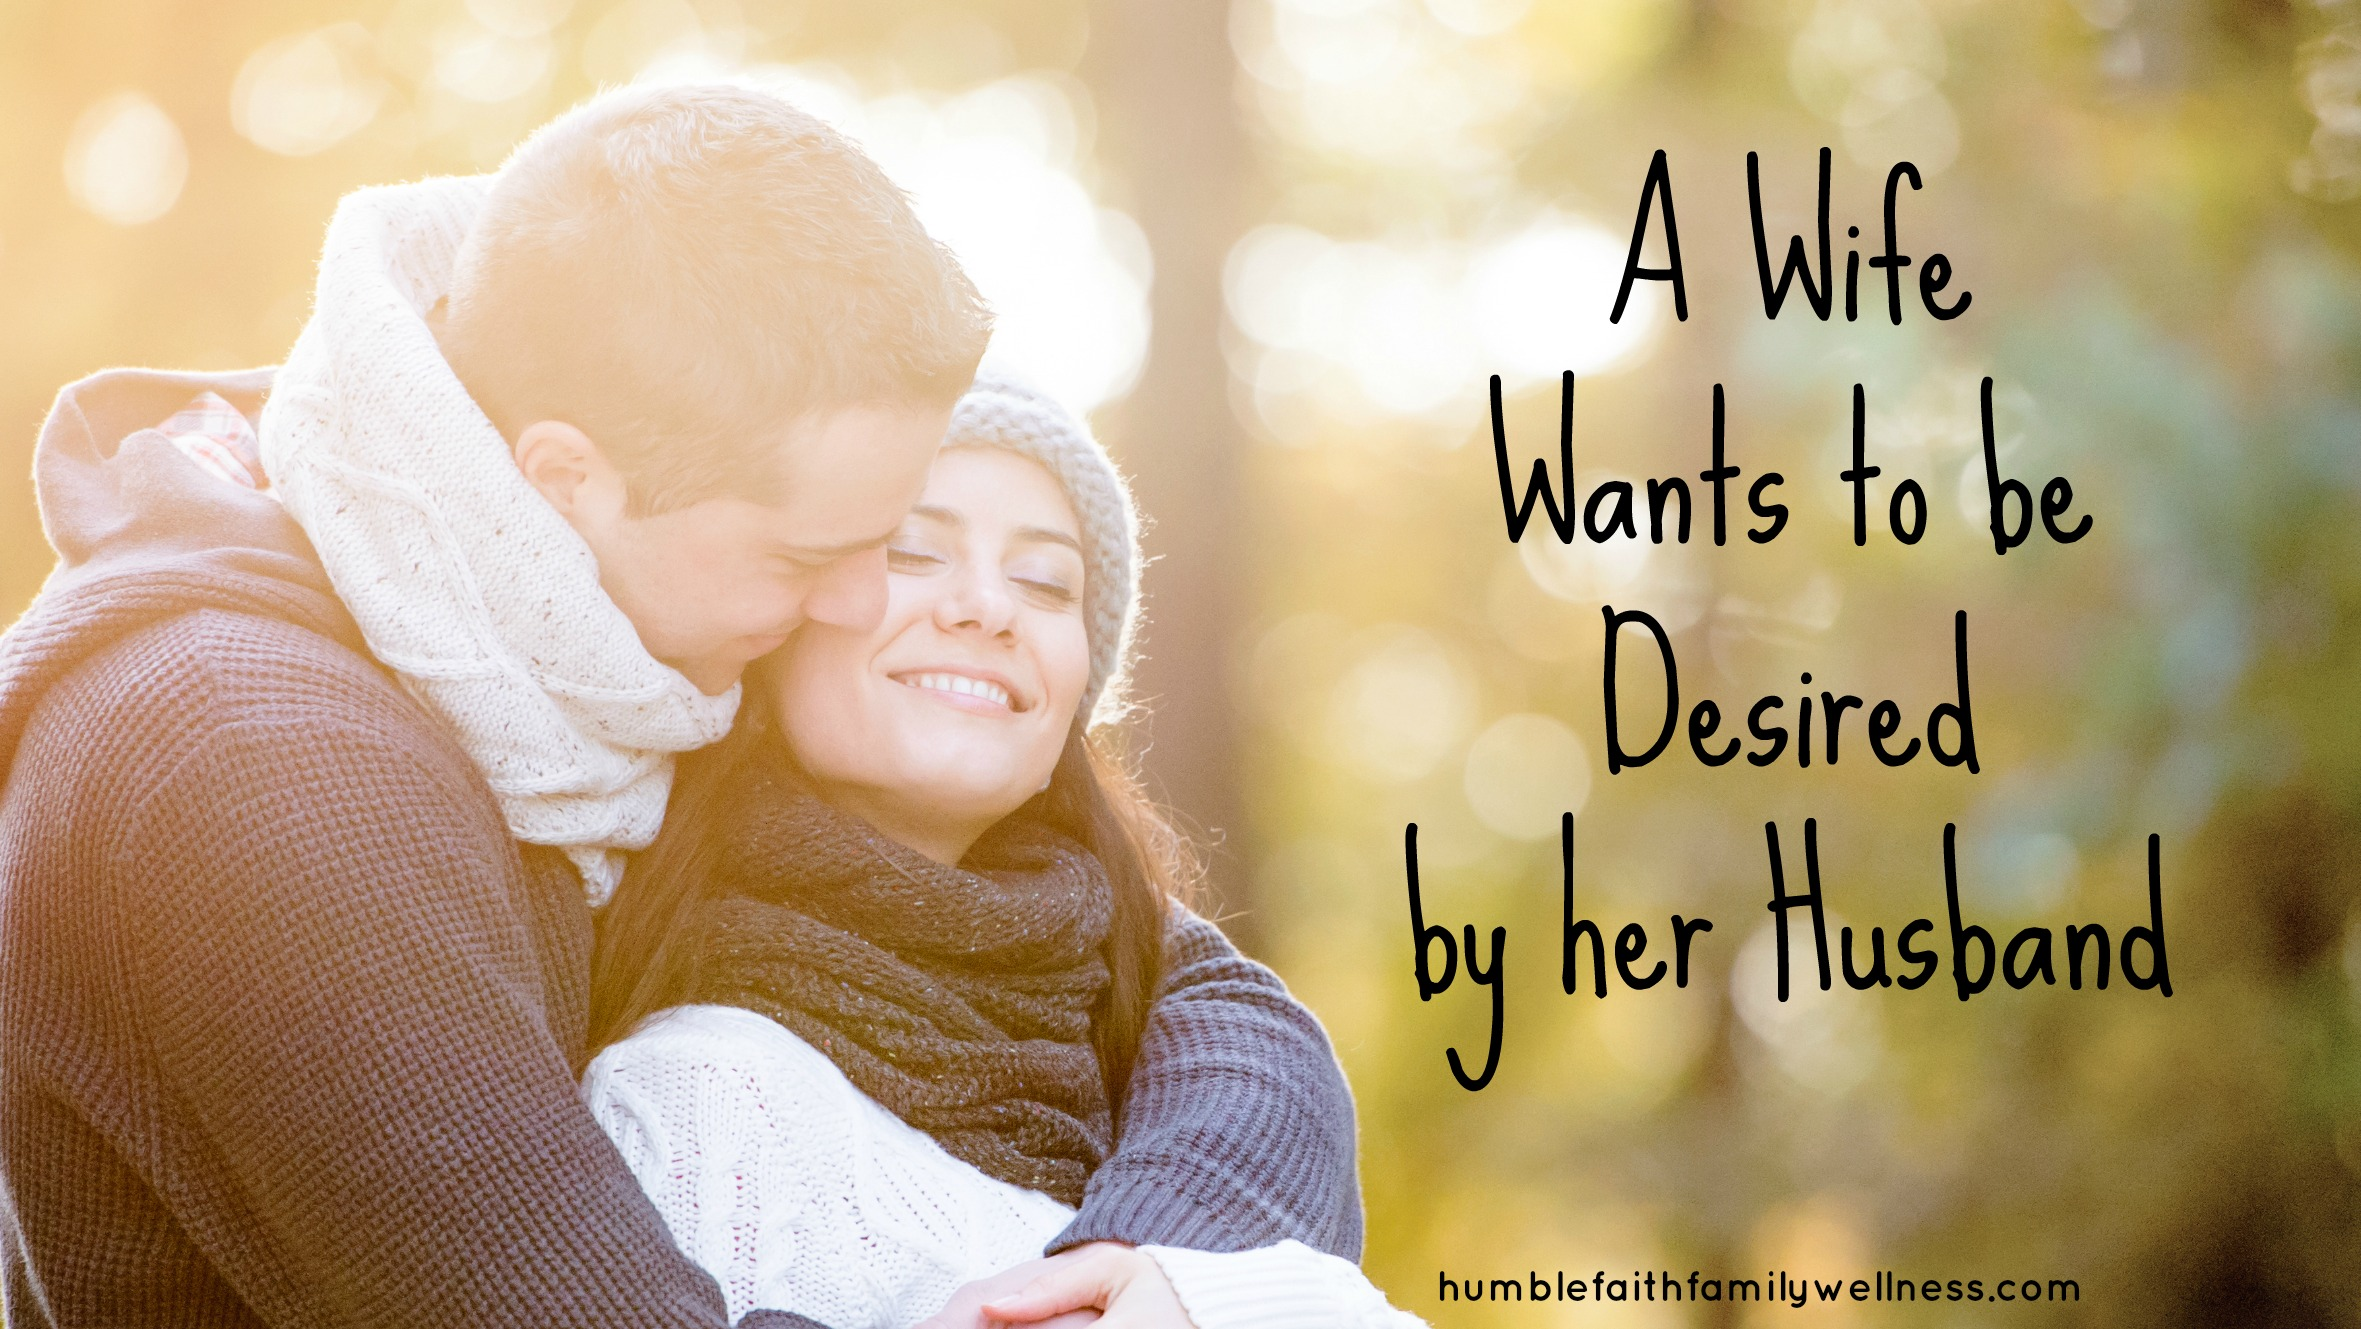 3 ways to make her feel truly beautiful and desirable